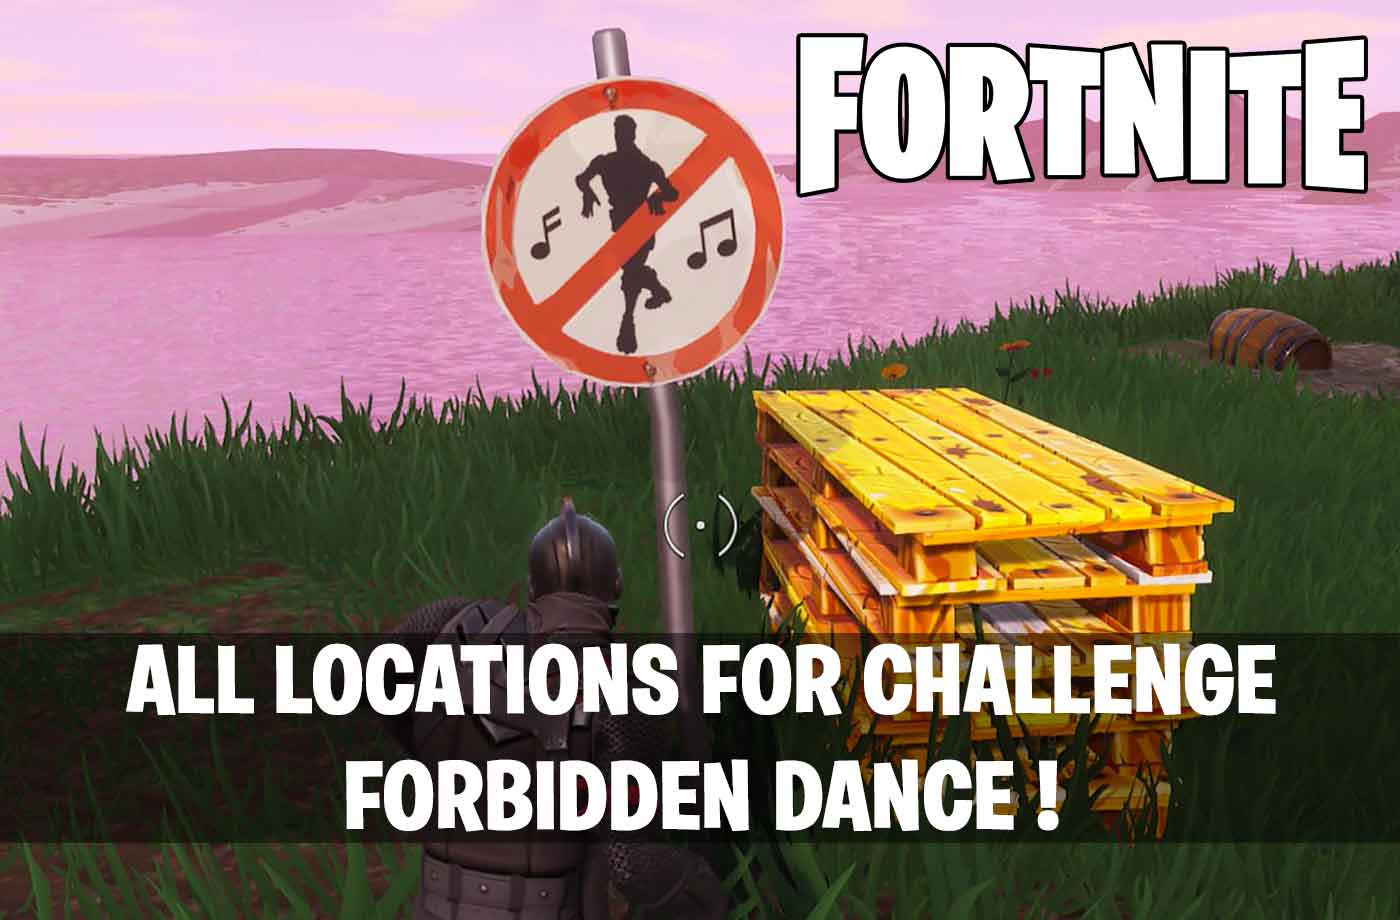 Forbidden Dance Locations Fortnite Season 7 - Mp3prohypnosis com